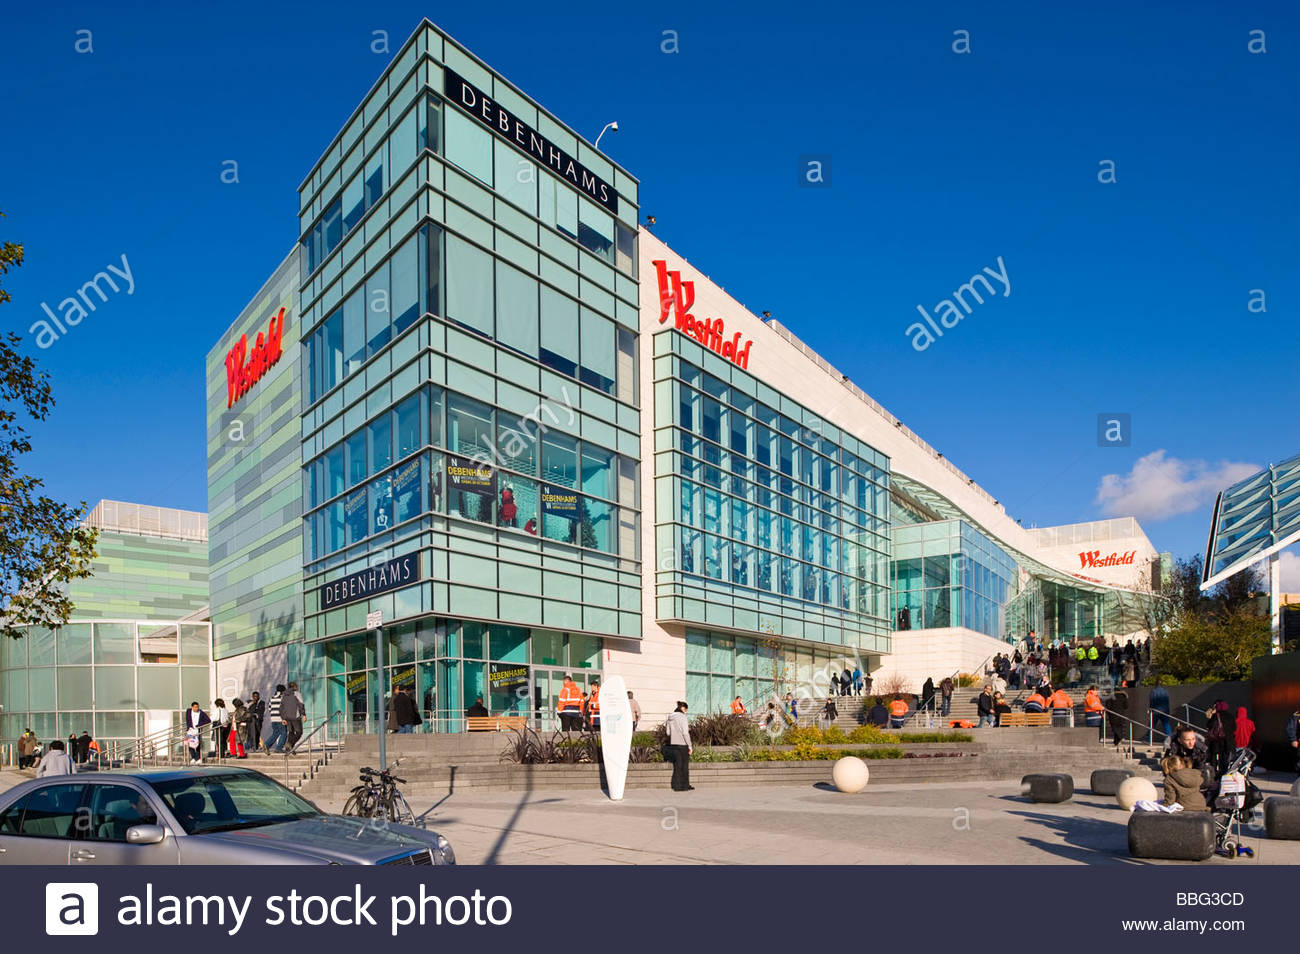 westfield shopping centre white city development w12 london stock photo royalty free image. Black Bedroom Furniture Sets. Home Design Ideas